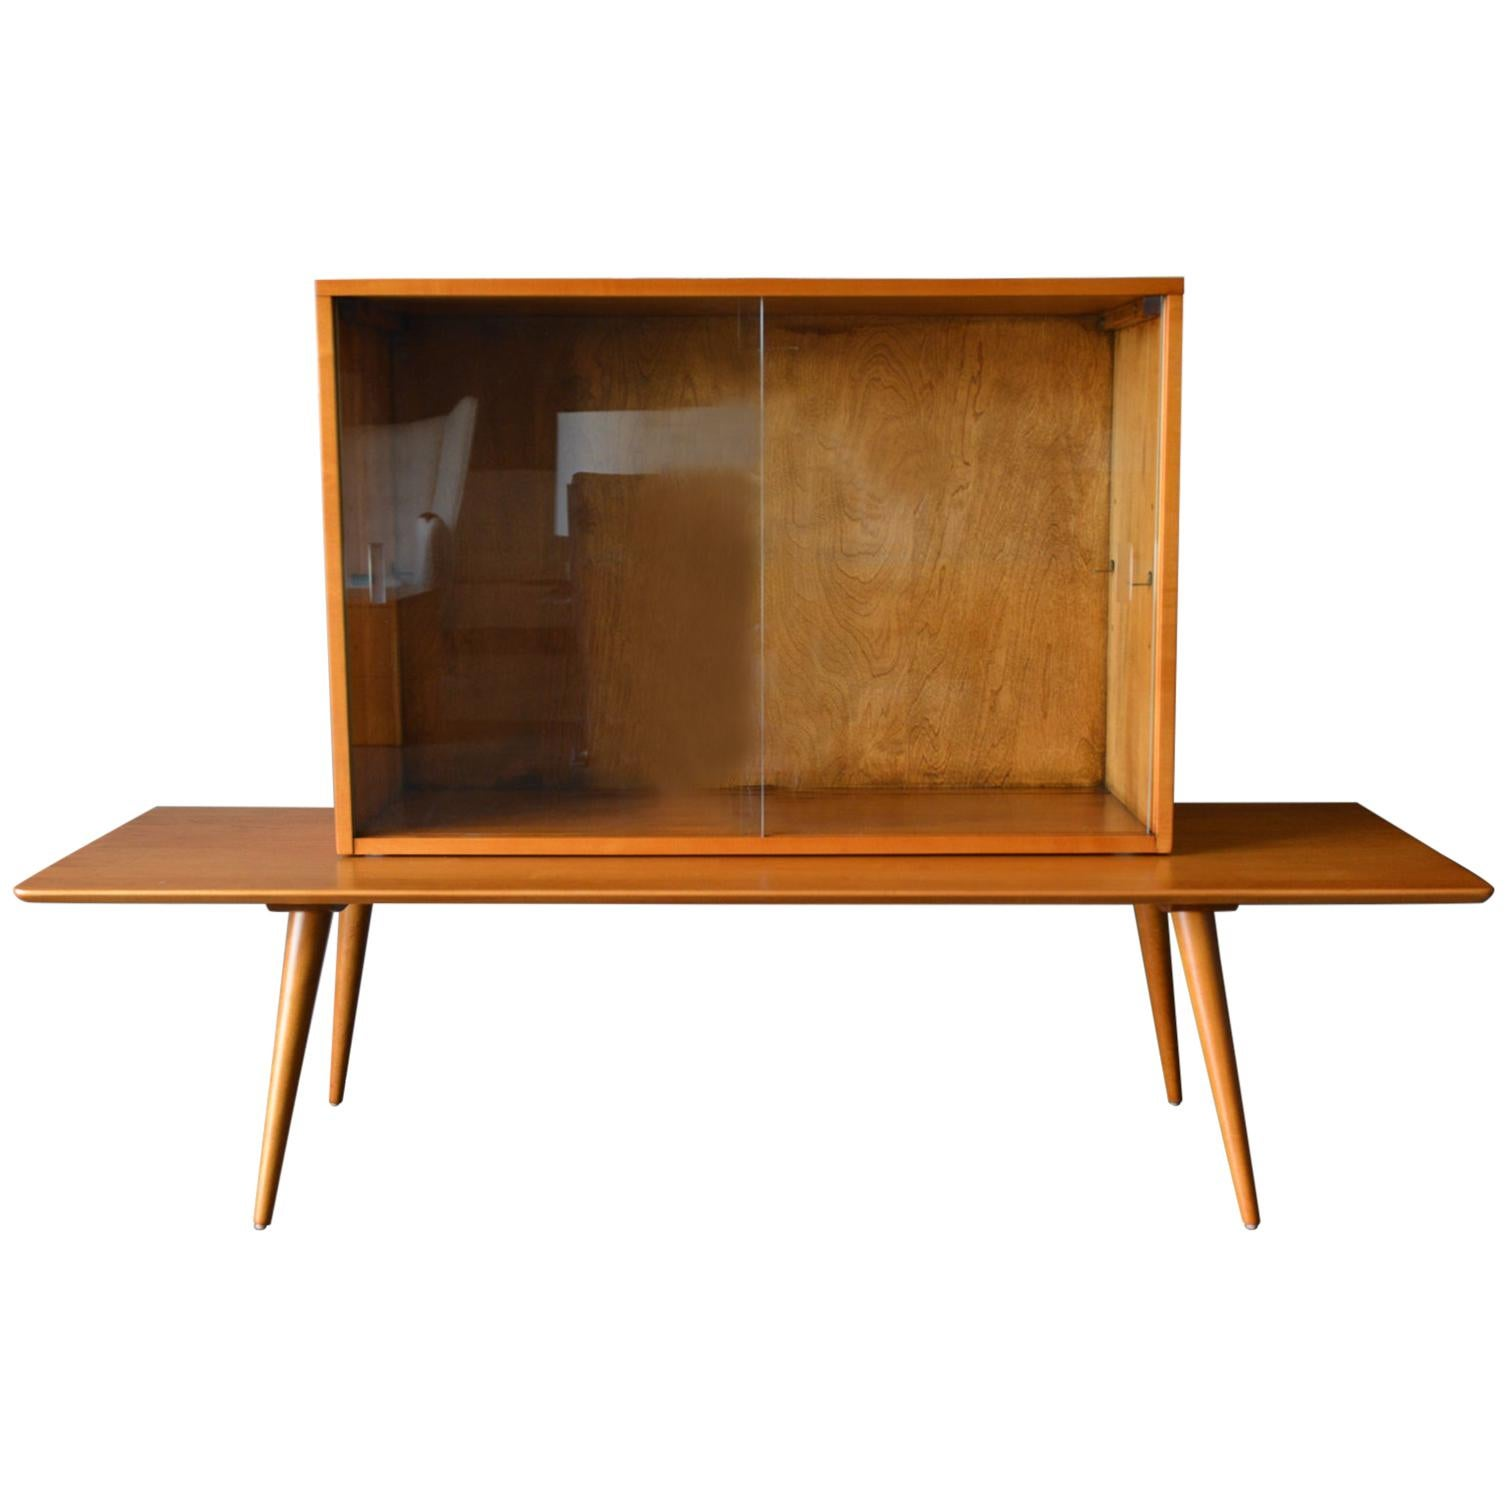 Paul McCobb Planner Group 2 Piece Modular Cabinet and Bench, 1955